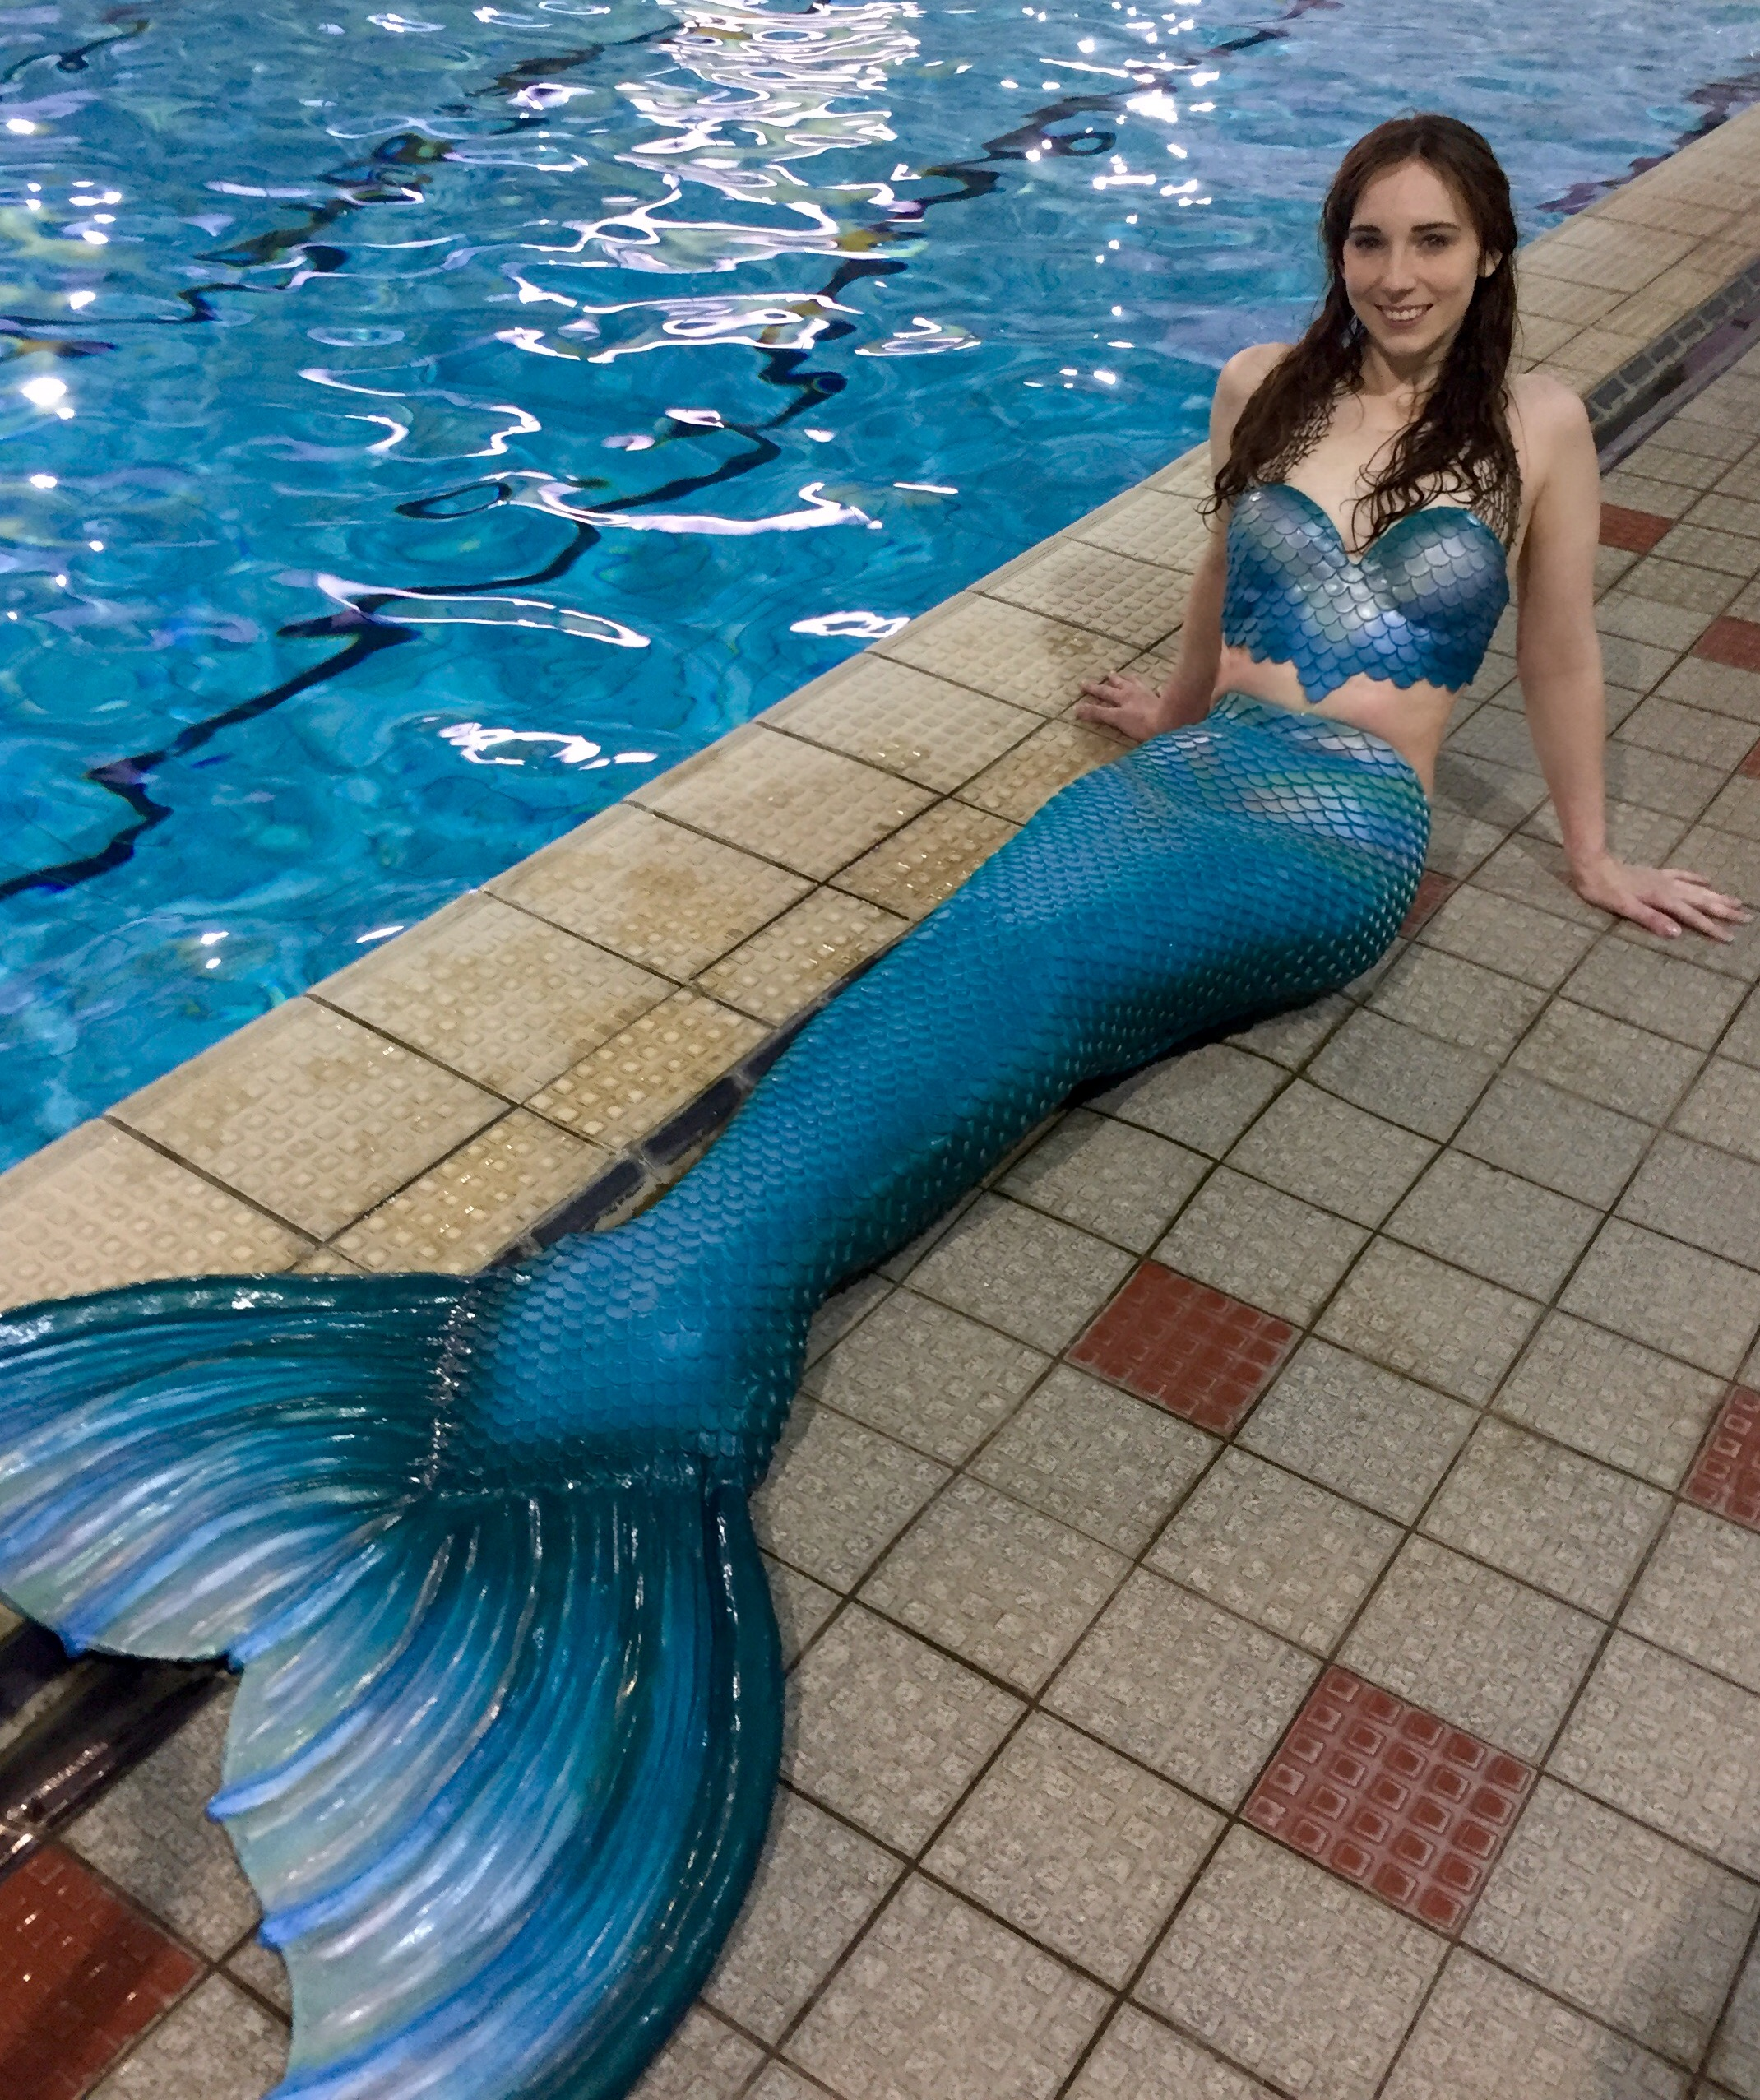 Mermaid Michelle in her Mernation tail and top